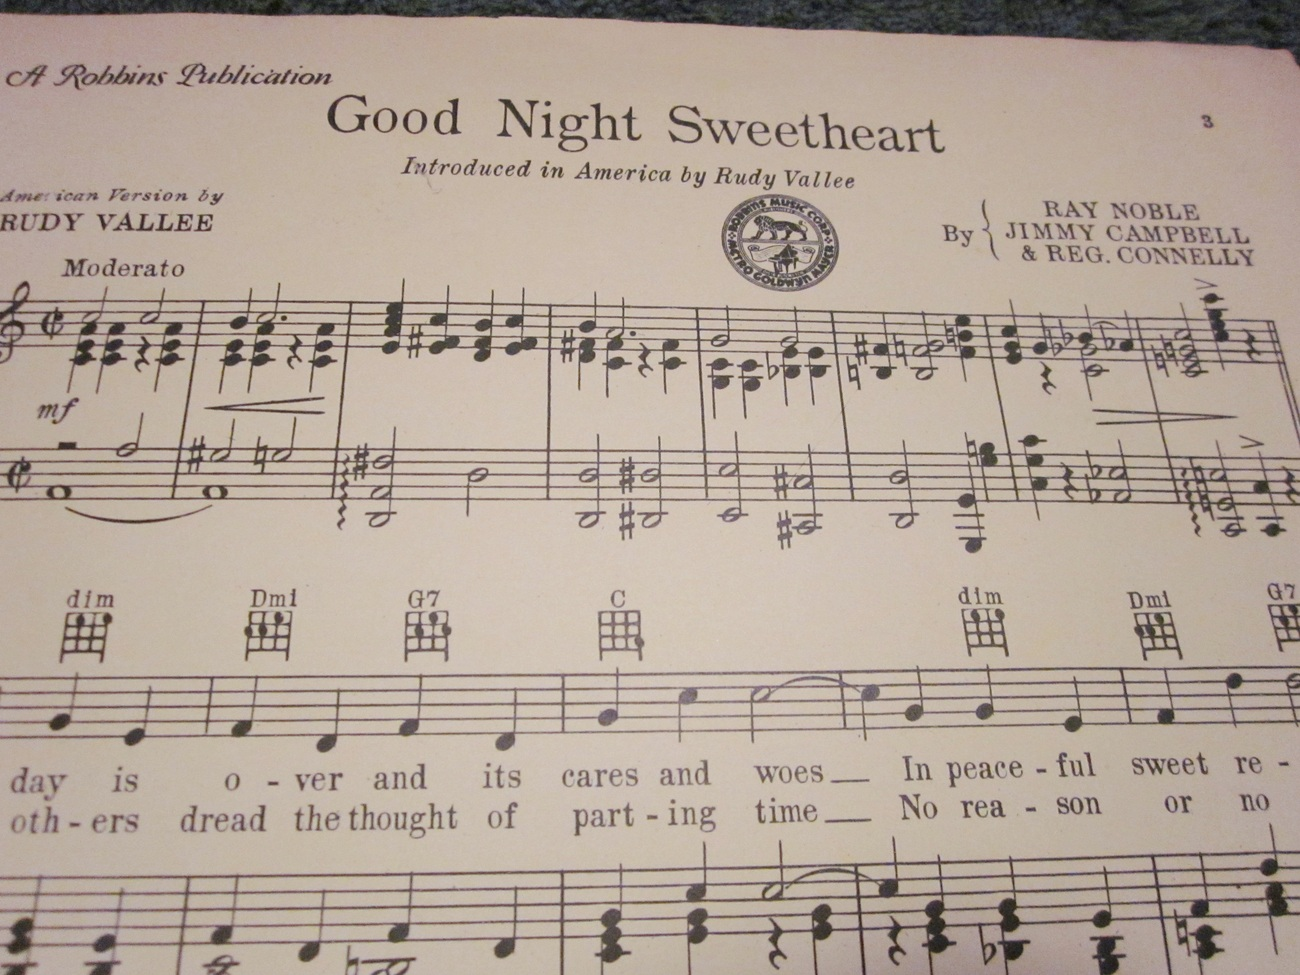 Sheet Music Good Night Sweetheart as done by Rudy Vallee 1931